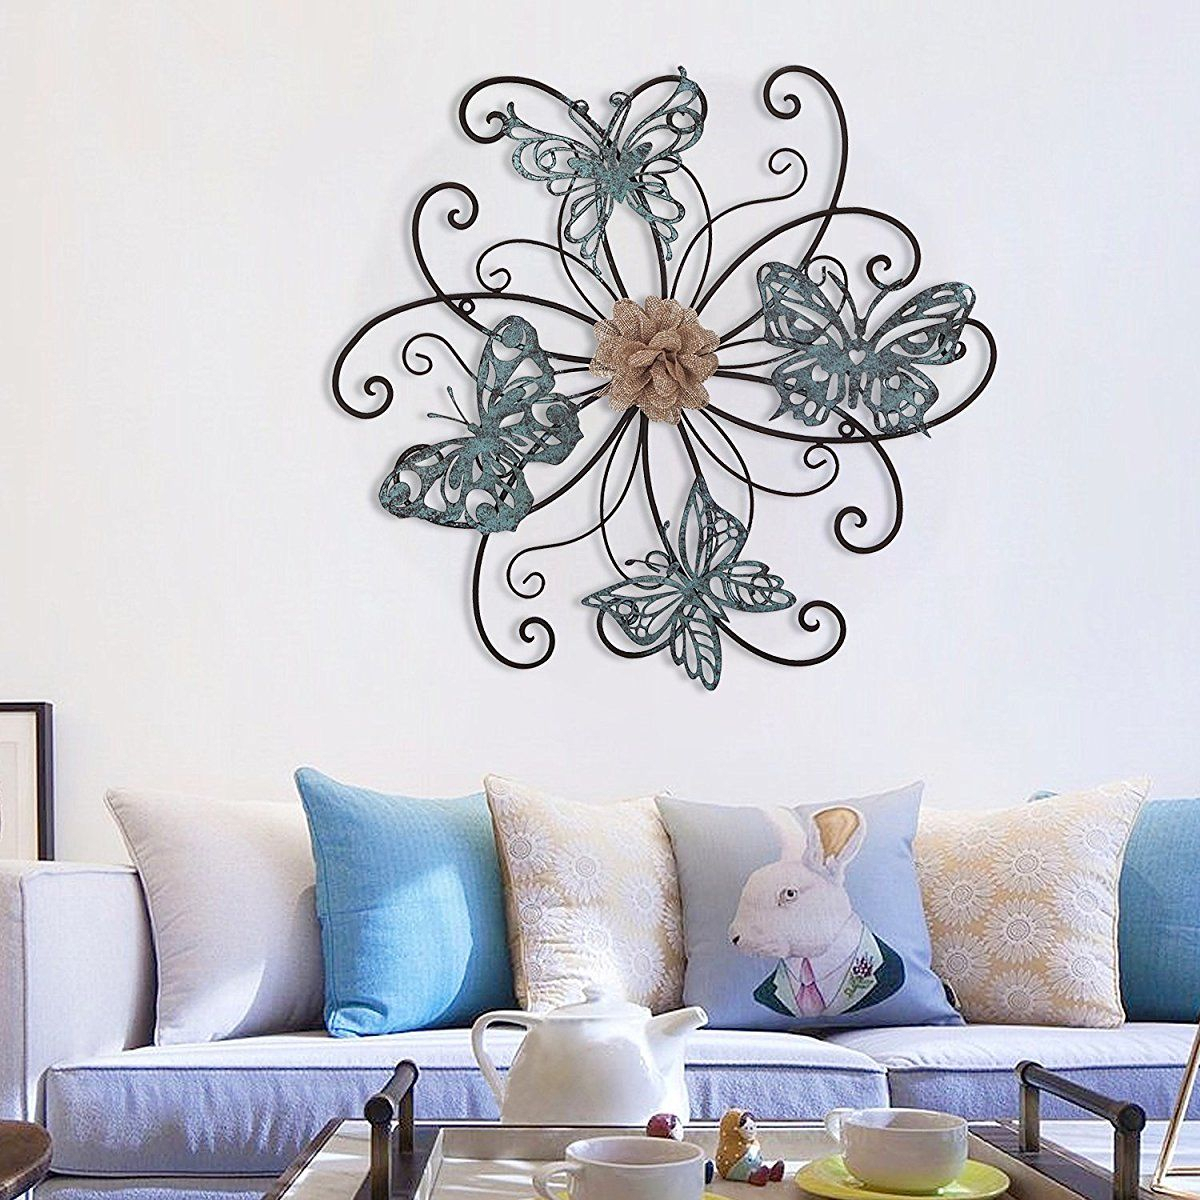 Homes Art Flower And Butterfly Urban Design Metal Wall Decor For Intended For Most Recently Released Flower And Butterfly Urban Design Metal Wall Decor (Gallery 7 of 20)